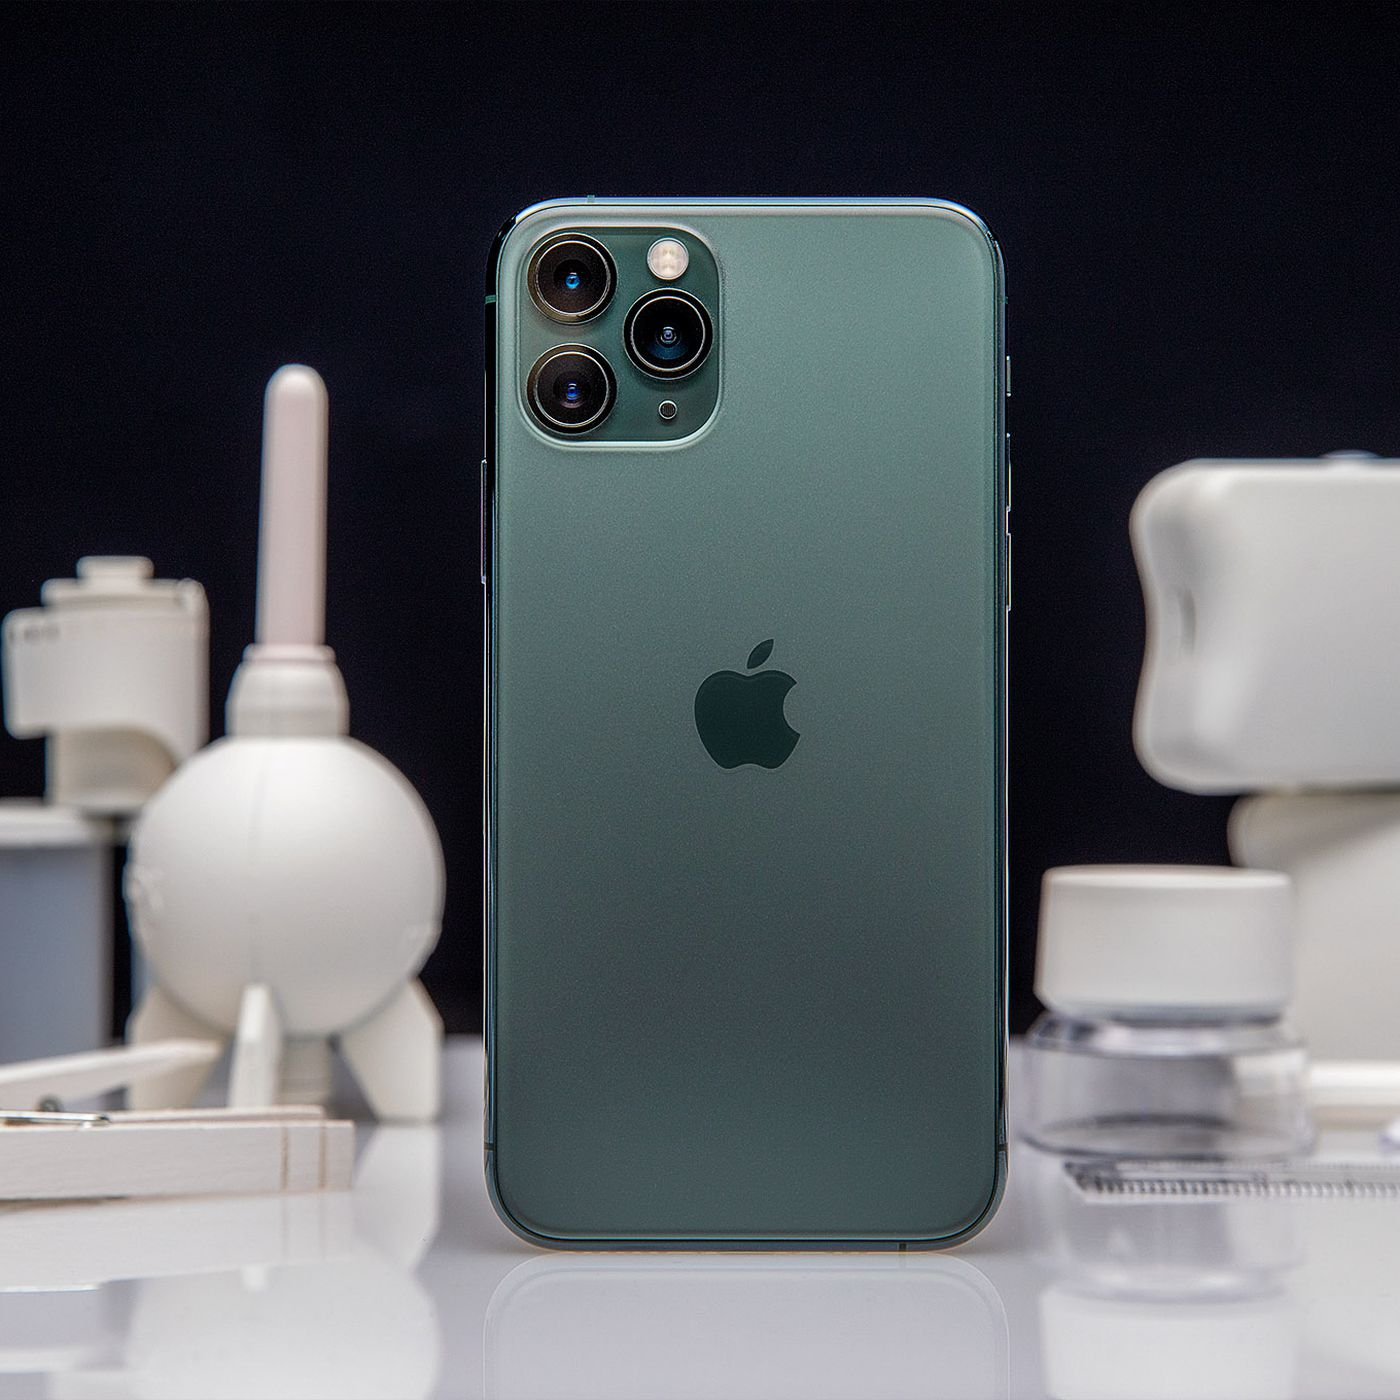 Apple Iphone 11 Pro And Pro Max Review Great Battery Life Screen